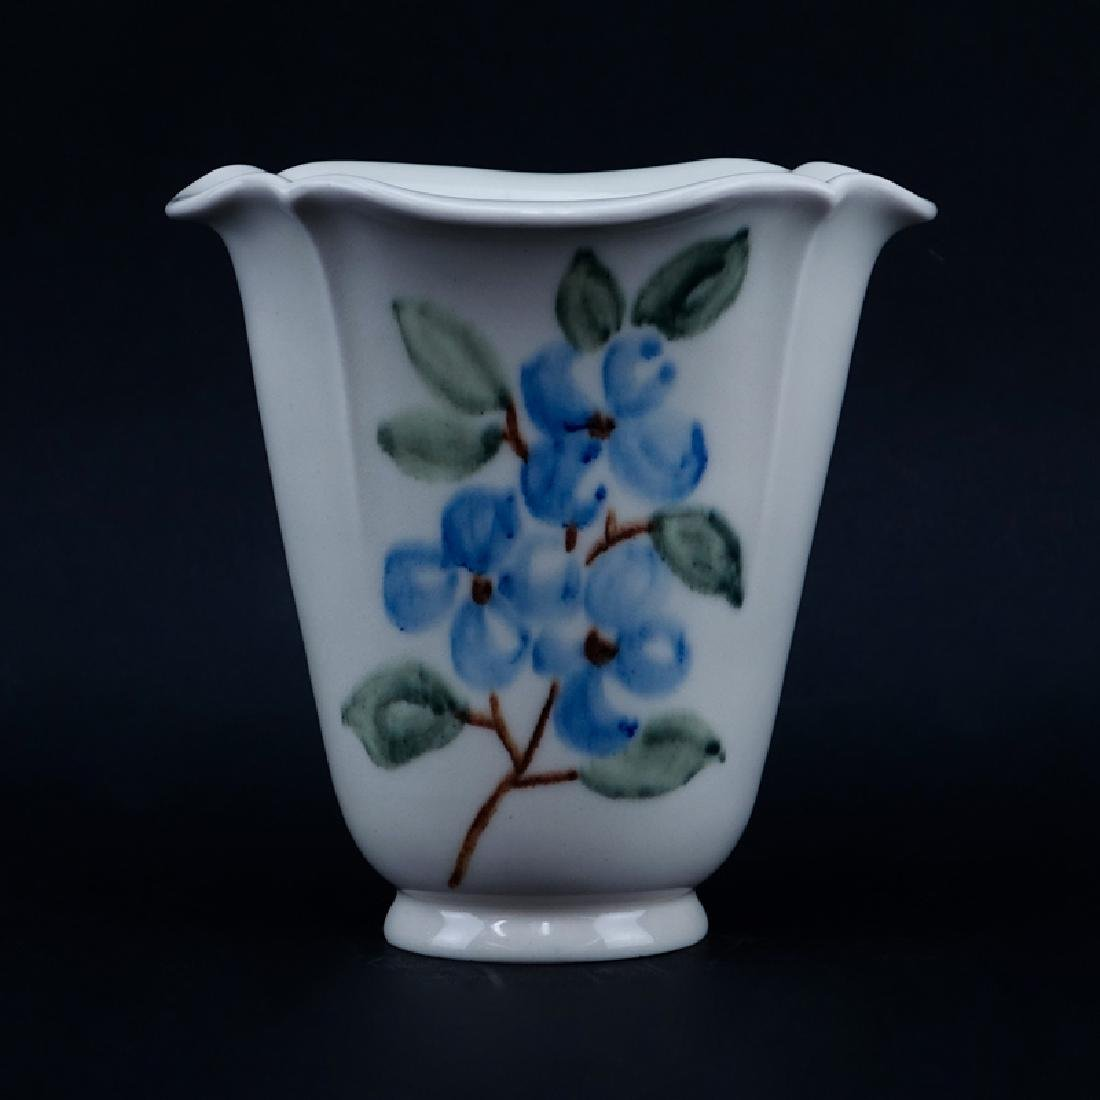 Rookwood Glaze Porcelain Footed Vase #6314. Signed.